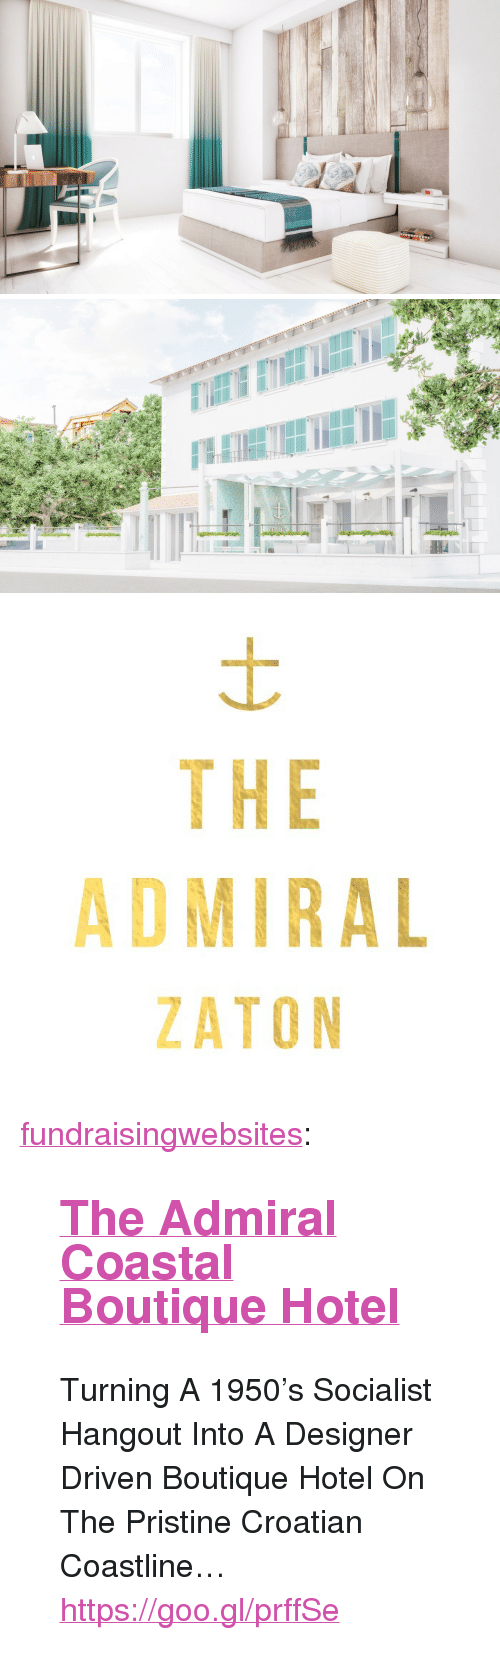 "Croatian: WWwwwNN   THE  ADMIRAL  ZATON <p><a class=""tumblr_blog"" href=""http://fundraisingwebsites.tumblr.com/post/141629655186"">fundraisingwebsites</a>:</p> <blockquote> <h2><a href=""https://goo.gl/prffSe"">The Admiral Coastal Boutique Hotel</a></h2> <p>  Turning A 1950's Socialist Hangout Into A Designer Driven Boutique Hotel On The Pristine Croatian Coastline… </p> <p><a href=""https://goo.gl/prffSe"">https://goo.gl/prffSe</a><br/></p> </blockquote>"